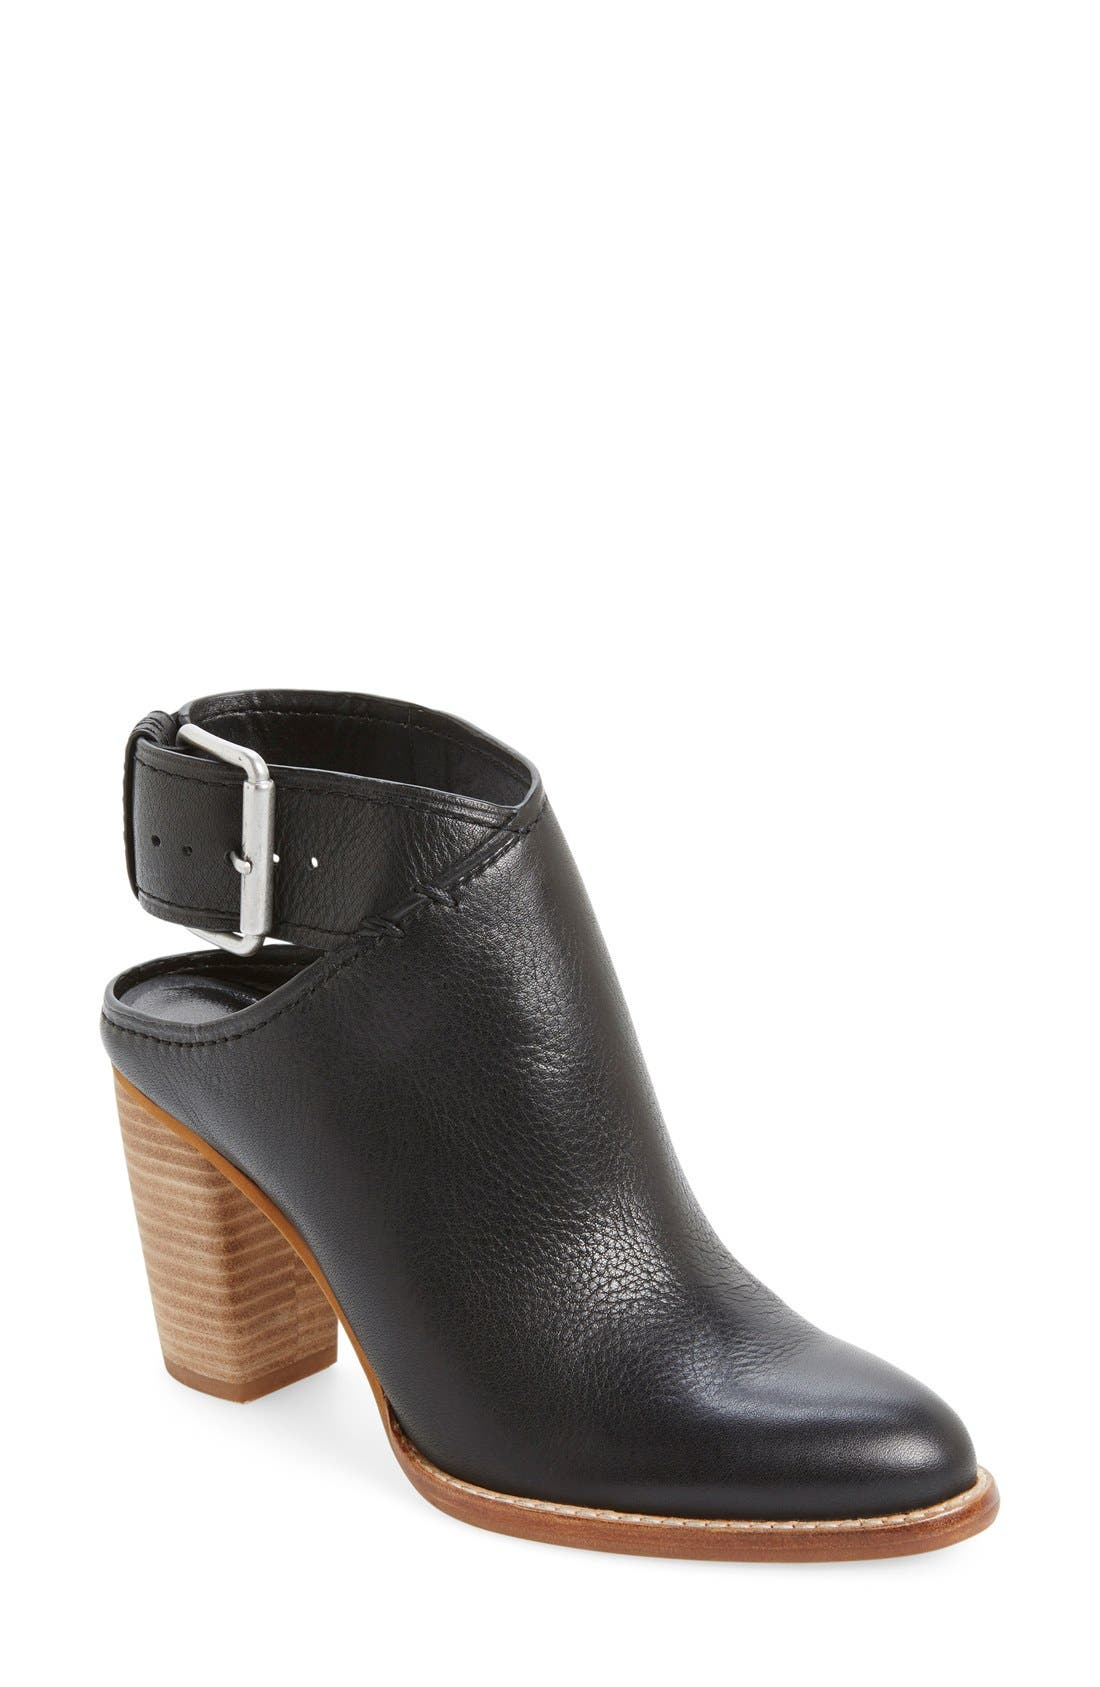 'Jacklyn' Bootie,                             Main thumbnail 1, color,                             001